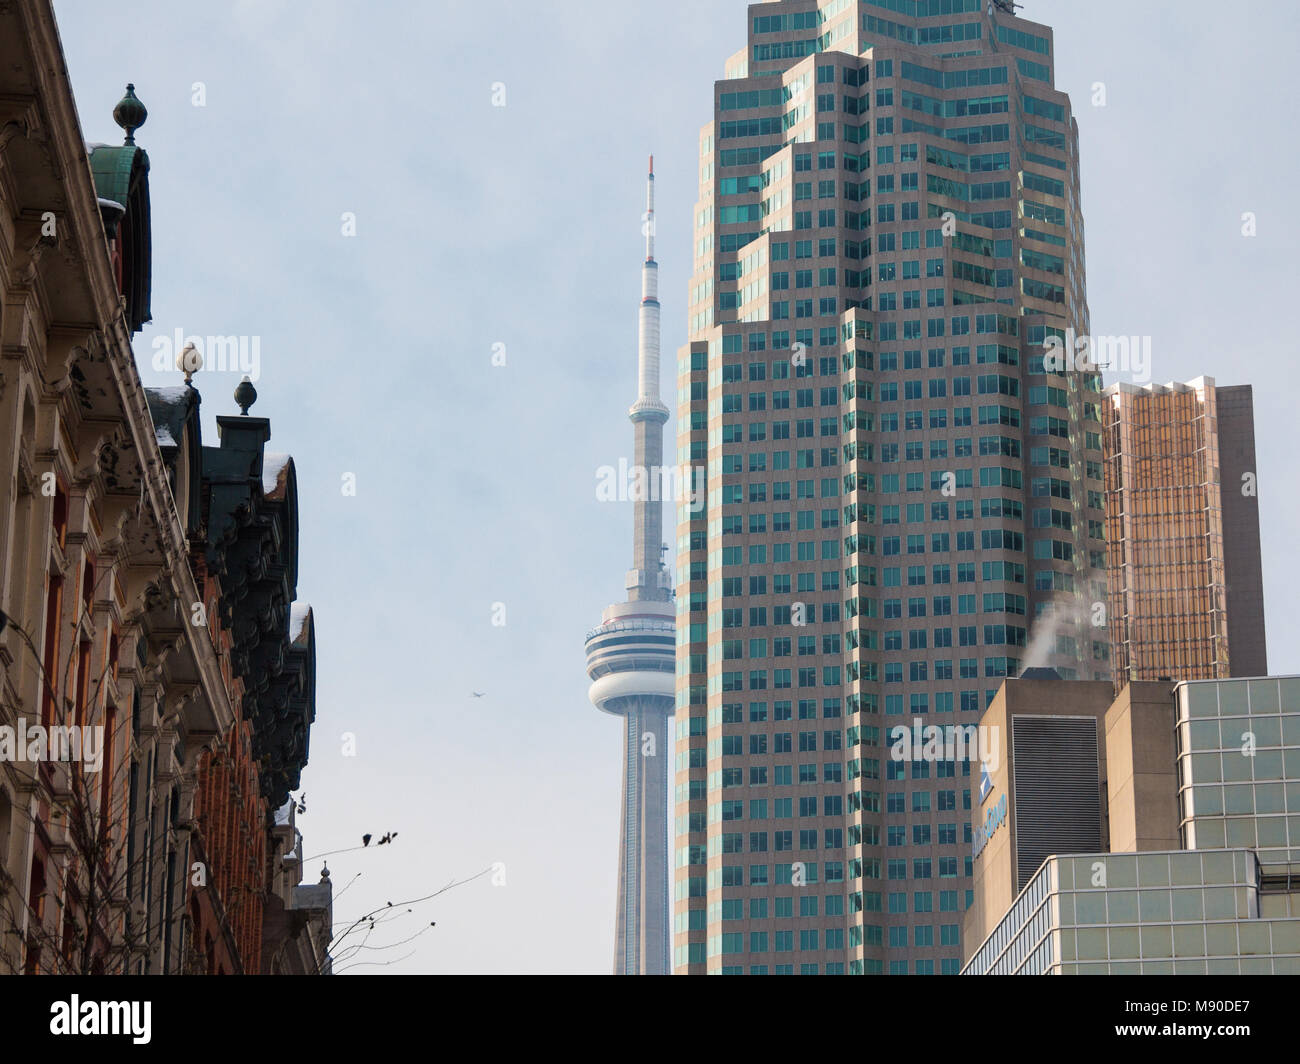 TORONTO, CANADA - DECEMBER 21, 2016: Canadian National Tower (CN Tower) surrounded by more modern buildings in downtown - Stock Image